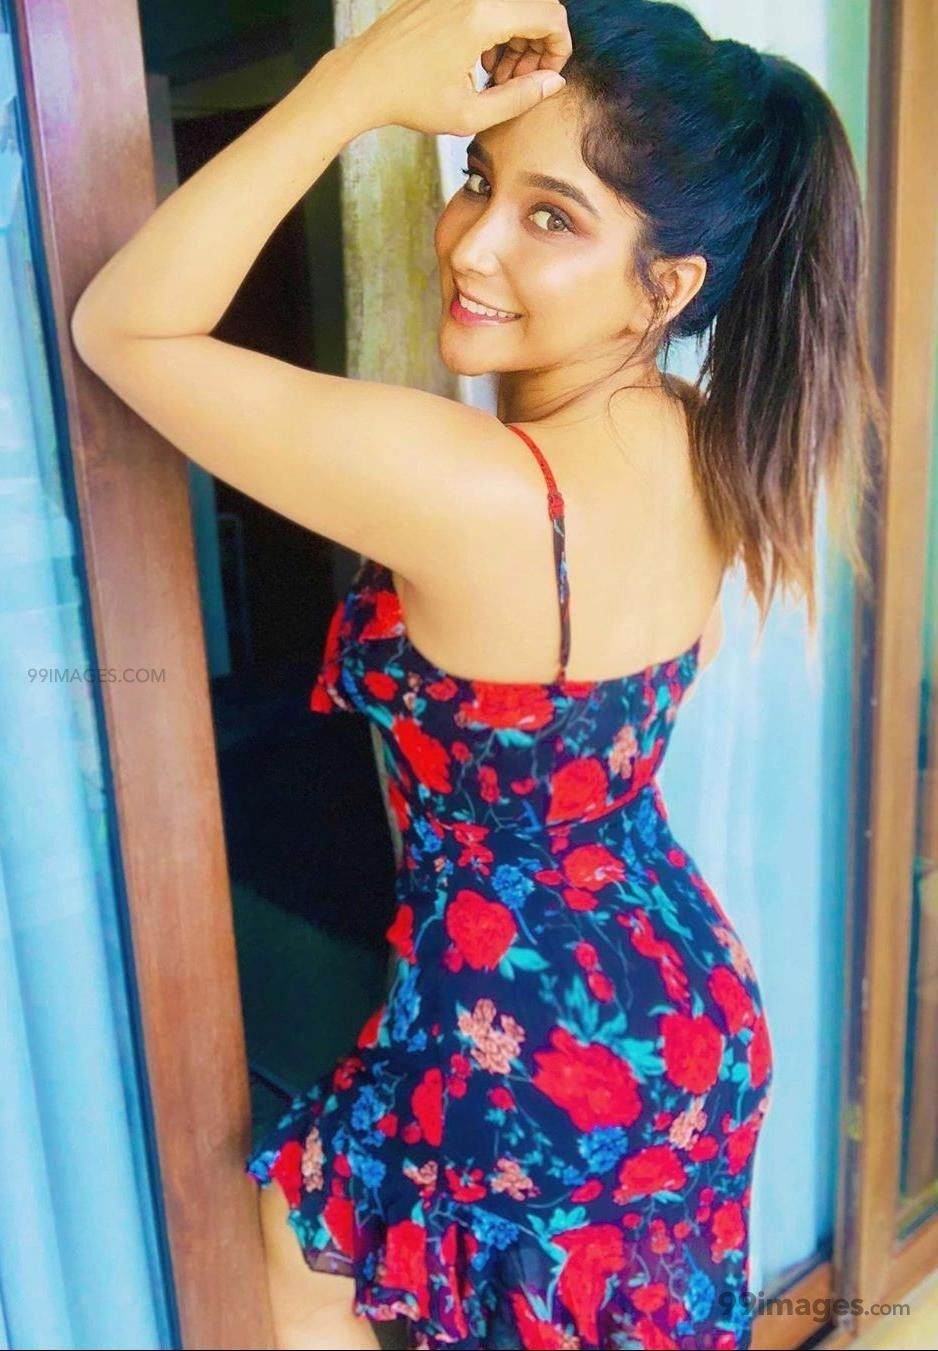 Sakshi Agarwal Hot HD Photos & Wallpapers for mobile (1080p) (551352) - Sakshi Agarwal